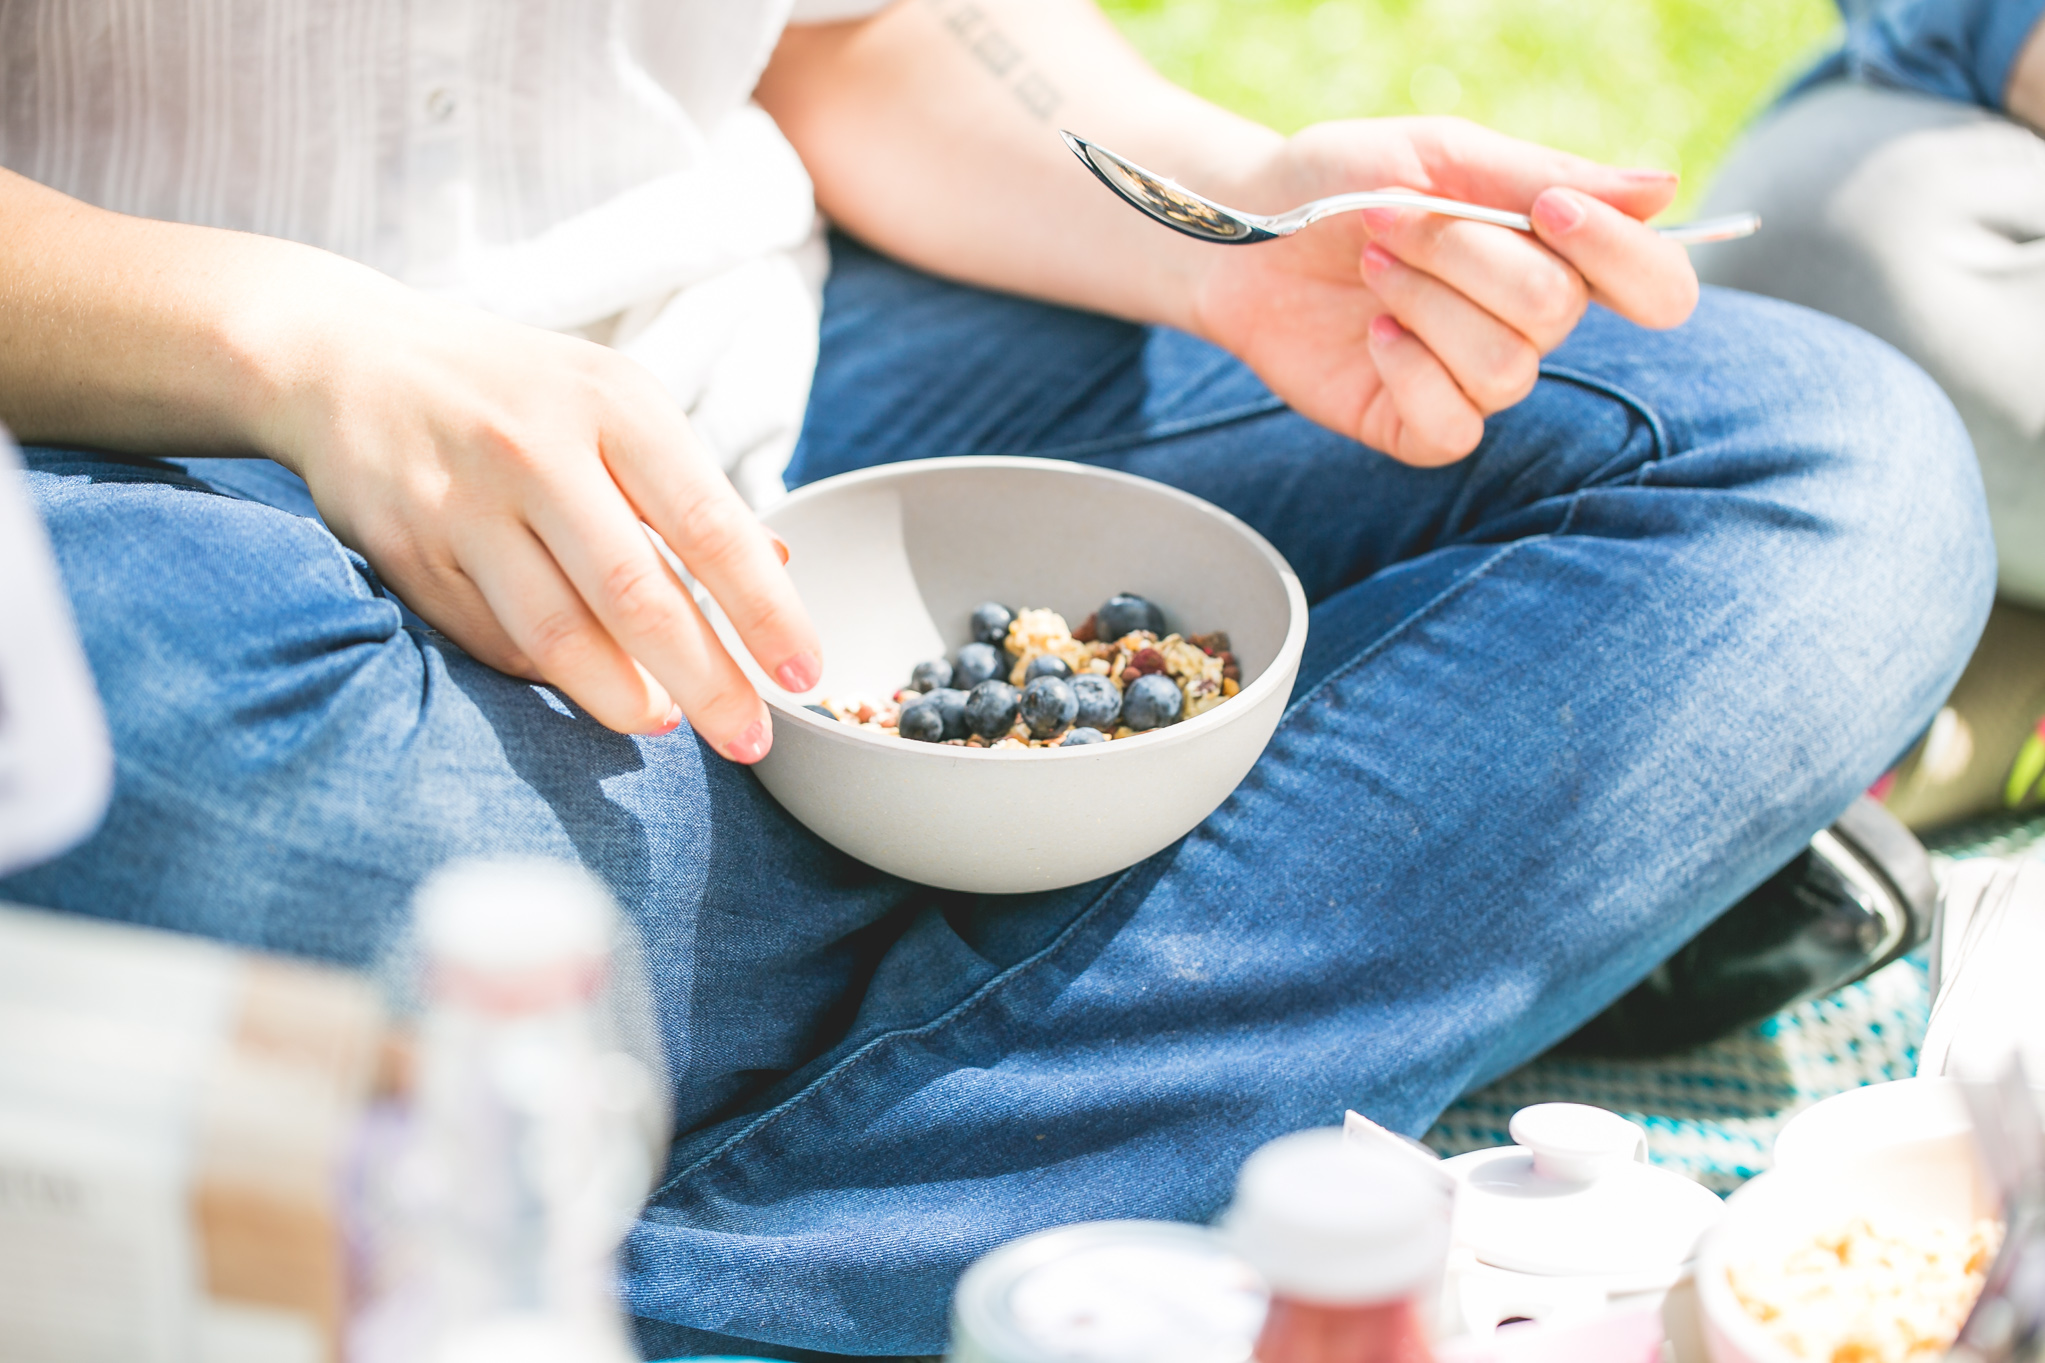 The perfect muesli bowl for a picnic: light but filled with all the goodies © Florence Stoiber